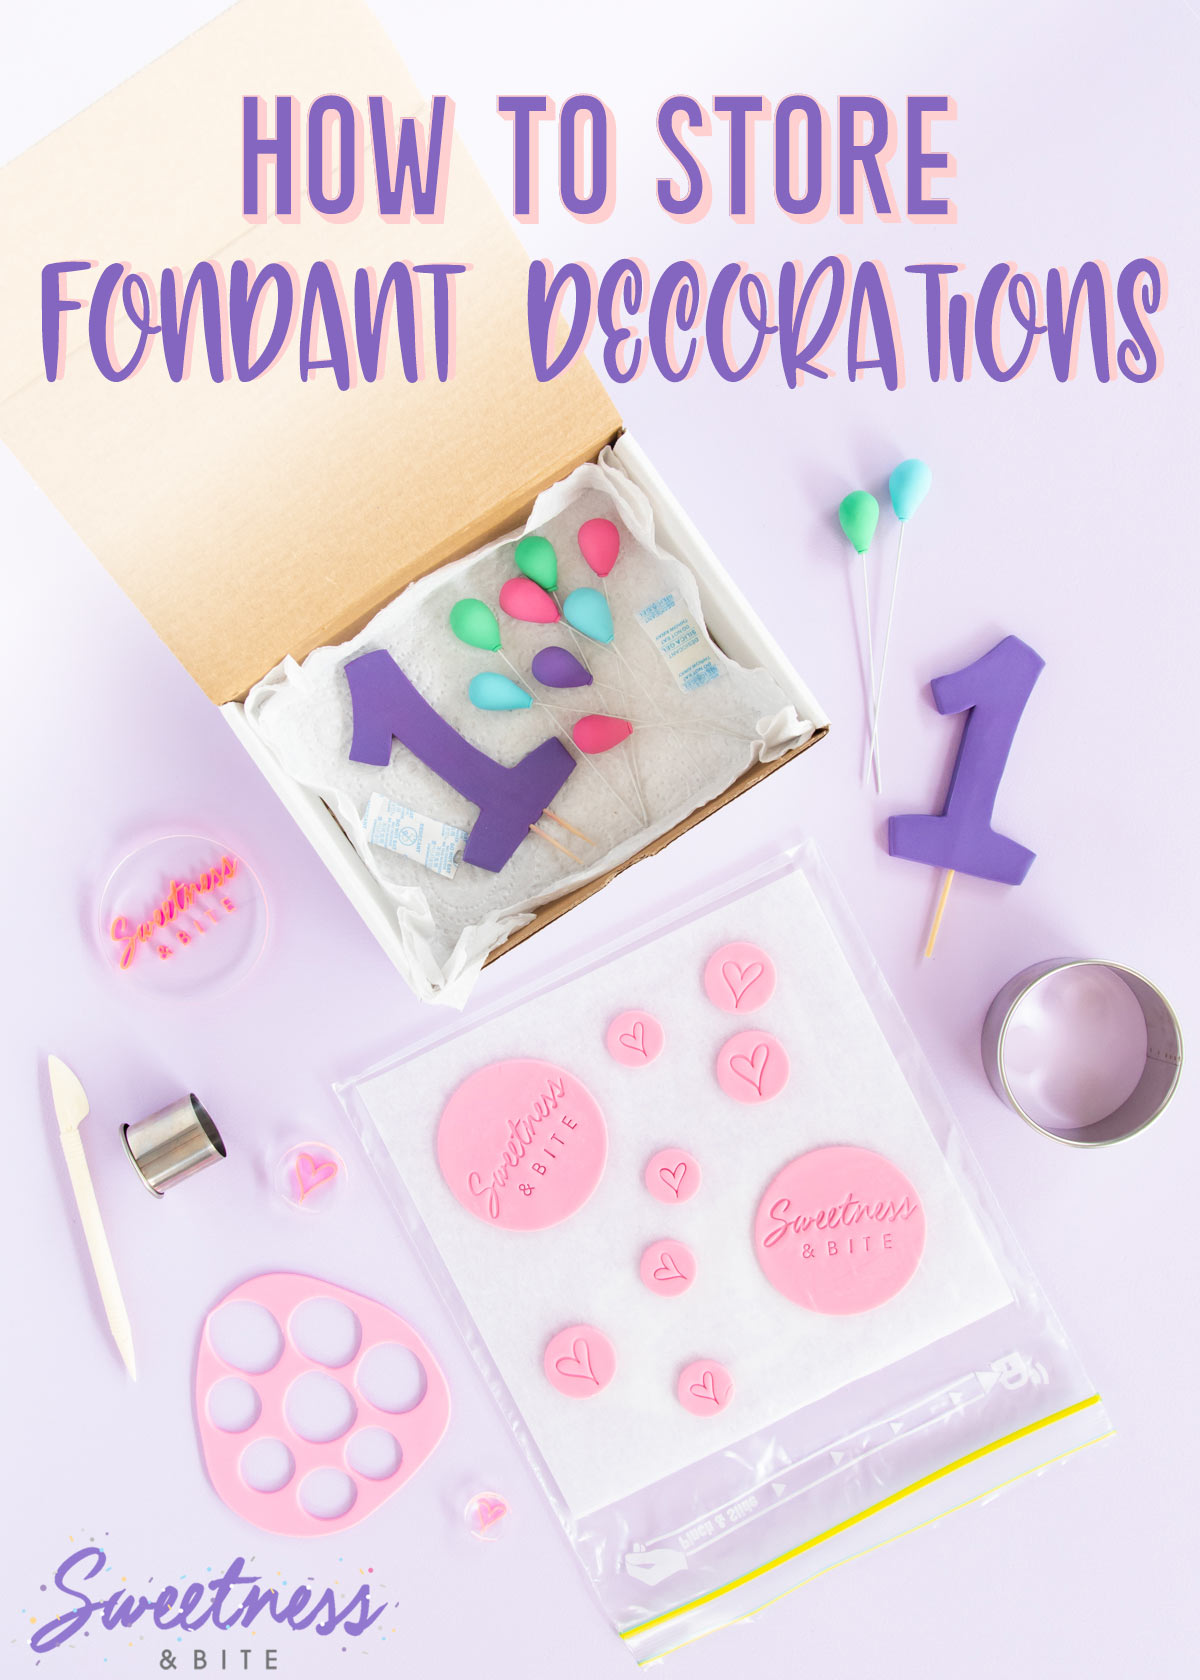 Fondant and gumpaste cake decorations in a box and in a resealable plastic bag - text overlay reads